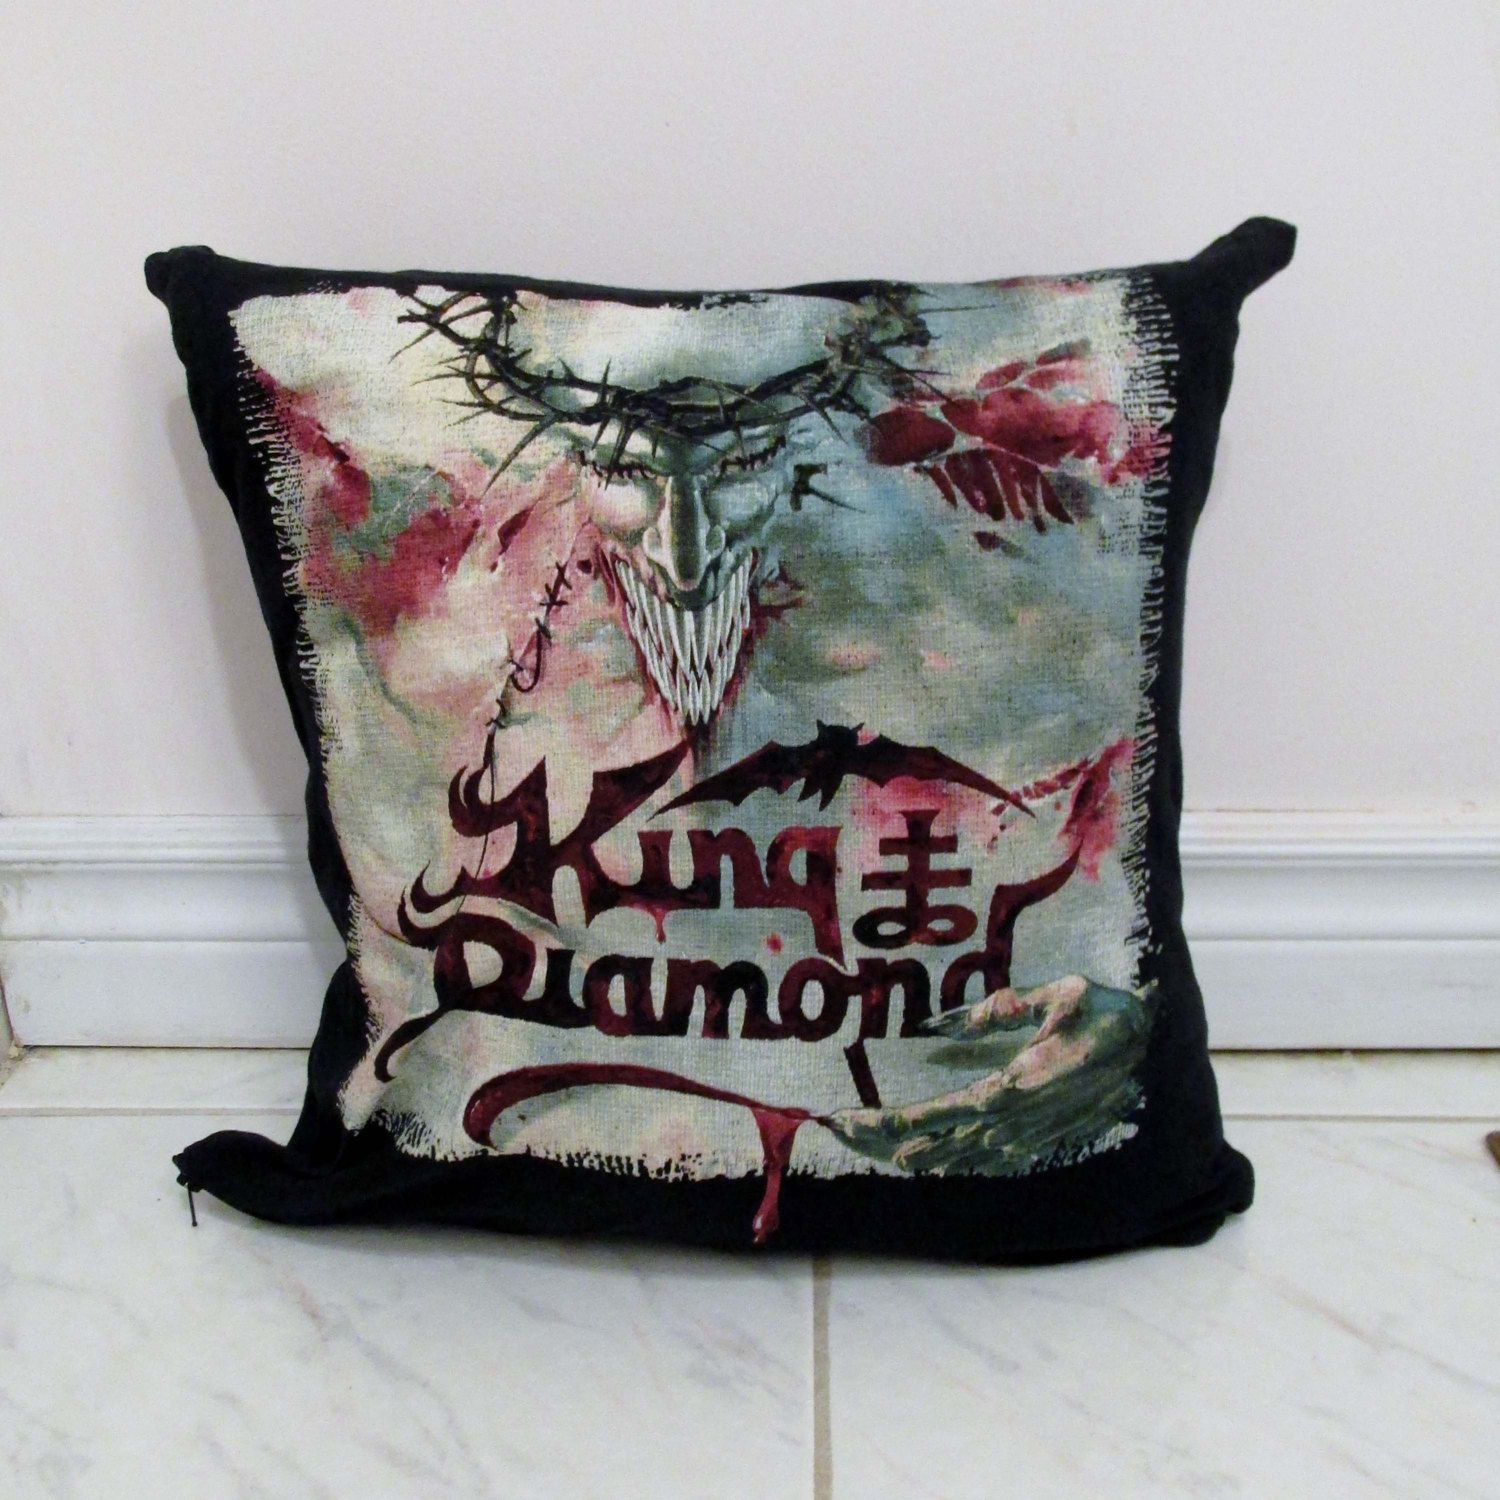 King Diamond Pillow Diy Heavy Metal Decor 1 Cover Only Insert Available